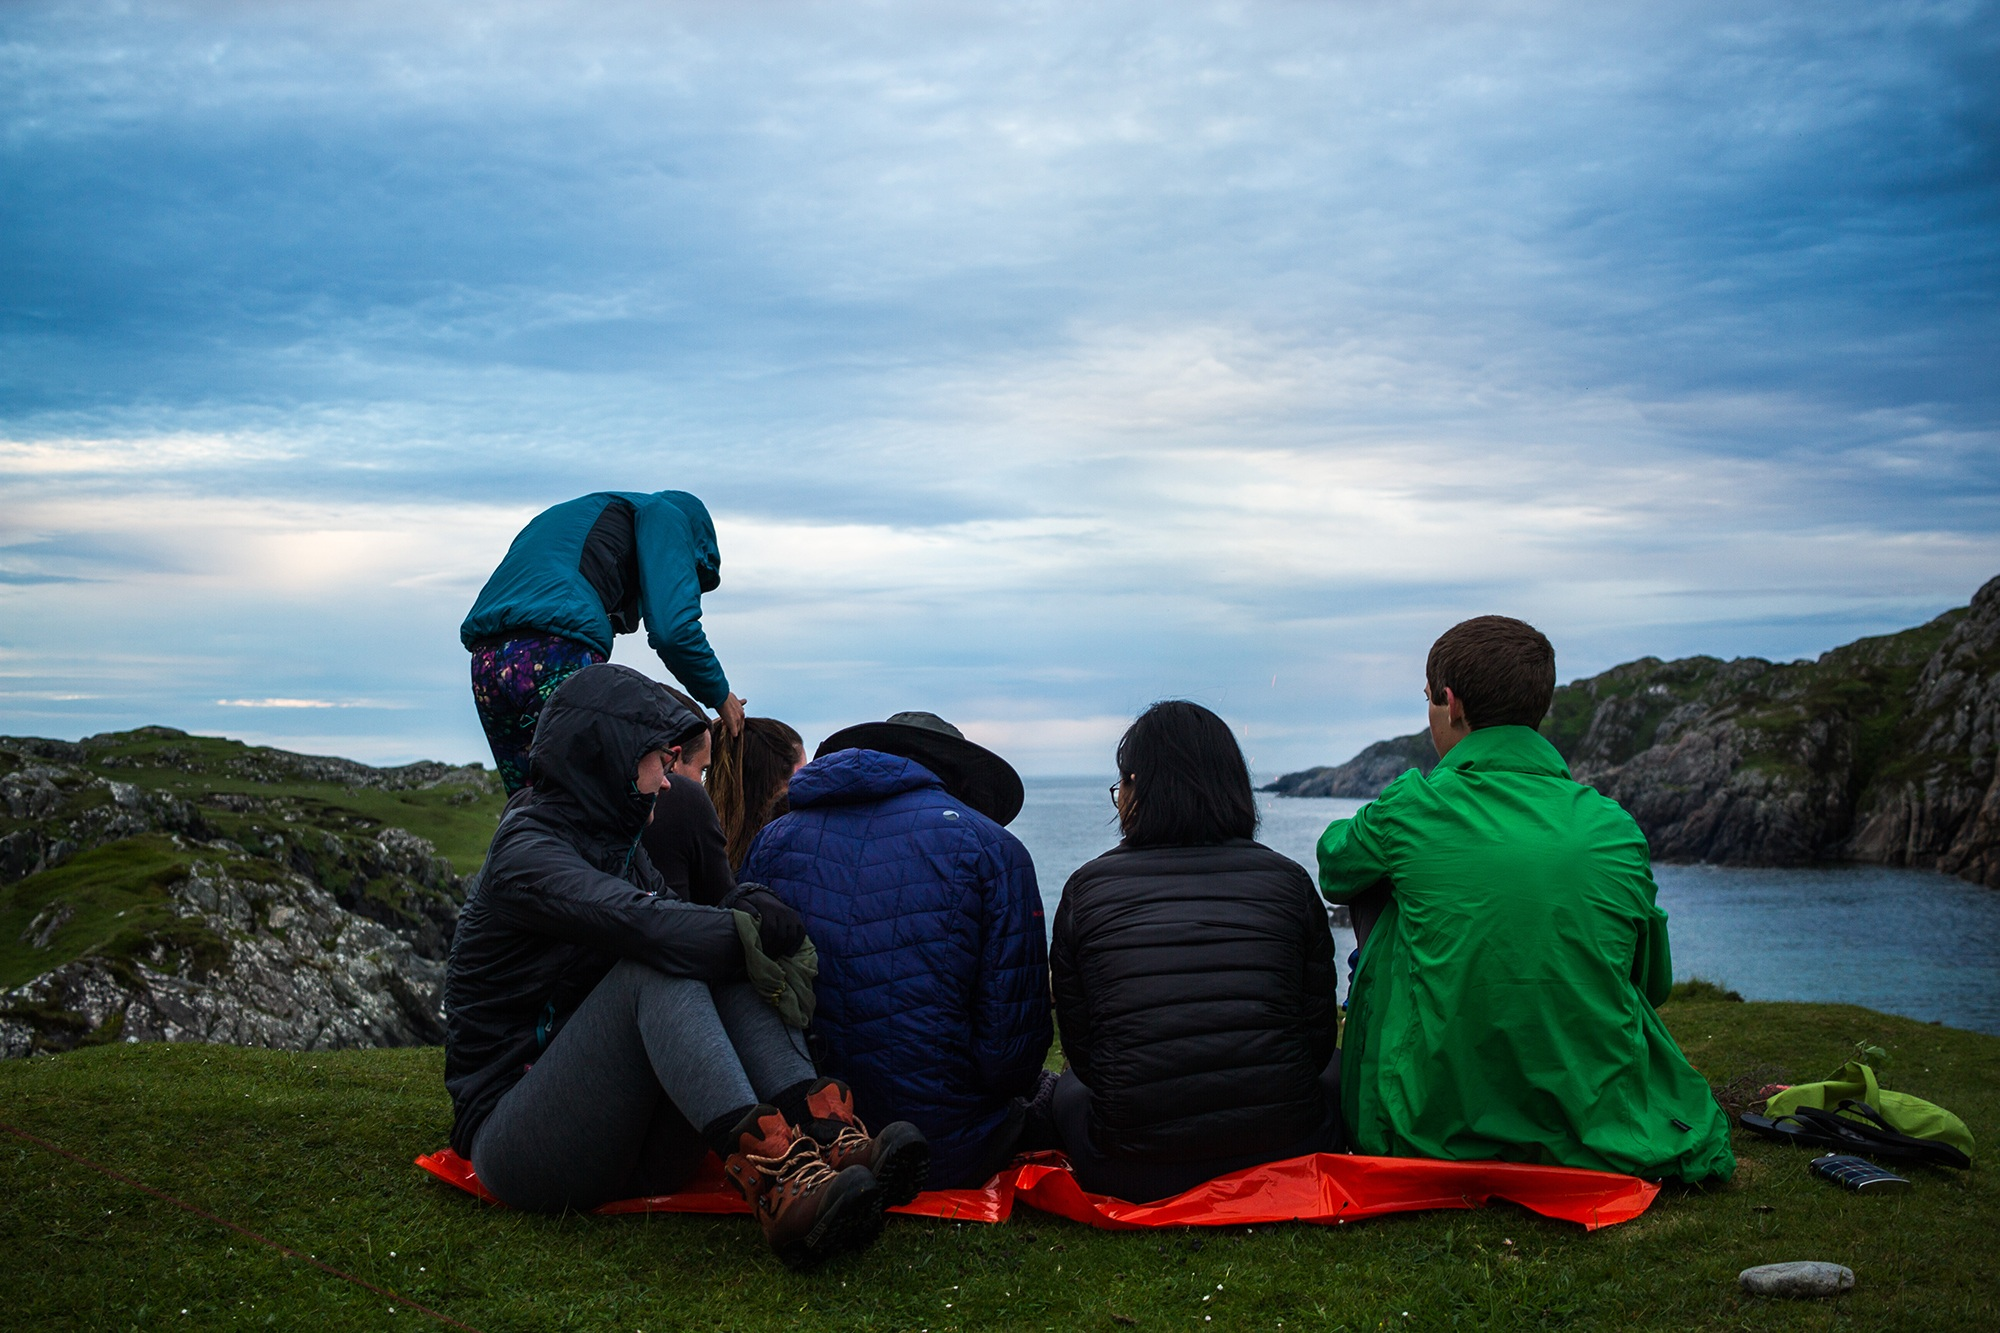 Photograph of Group sat in a hidden cove, Assynt, shot by Jessie Leong